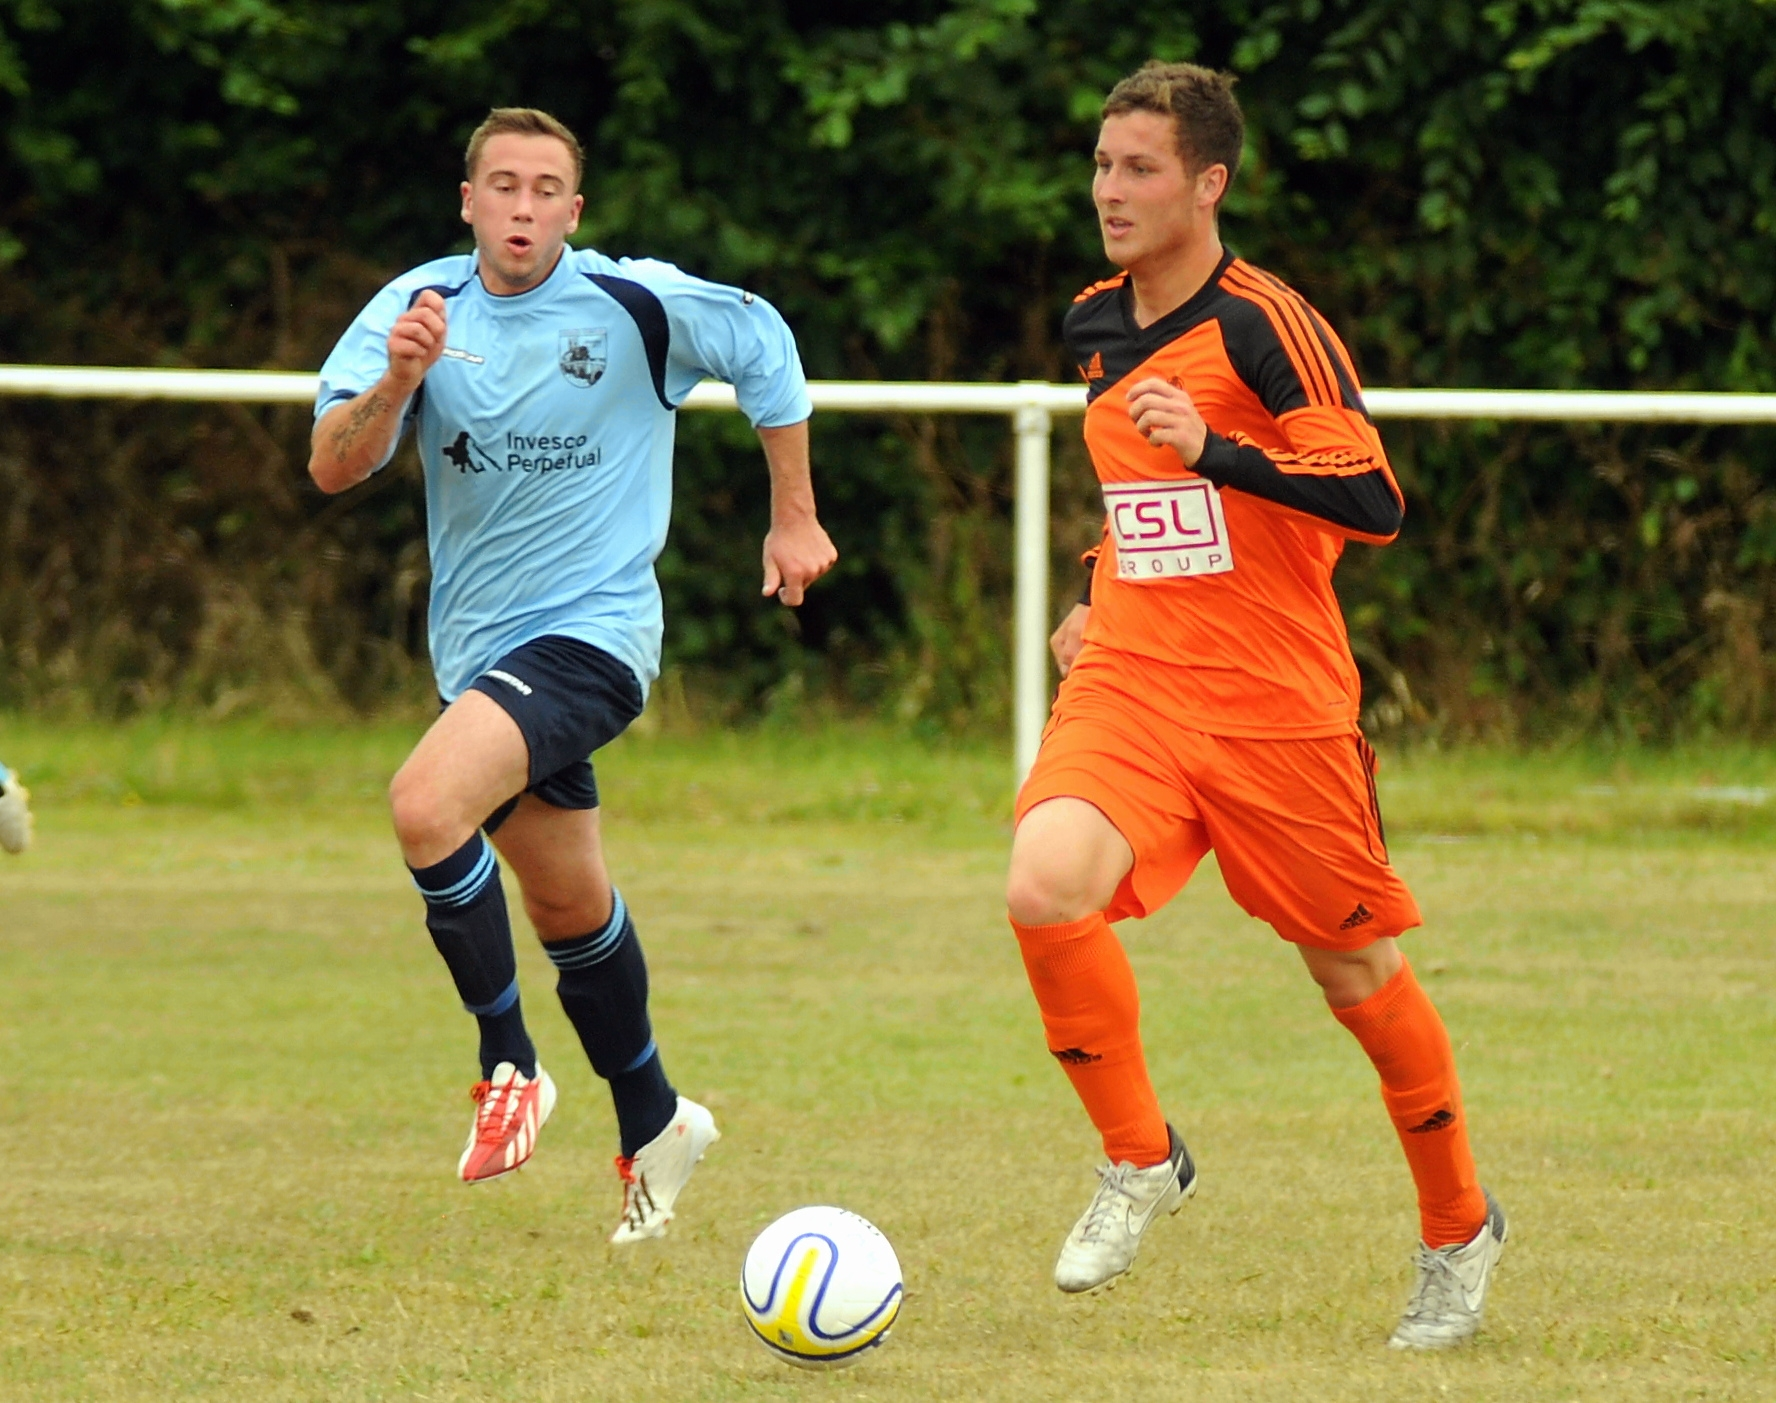 Jack Coventry scored for Hartley Wintney